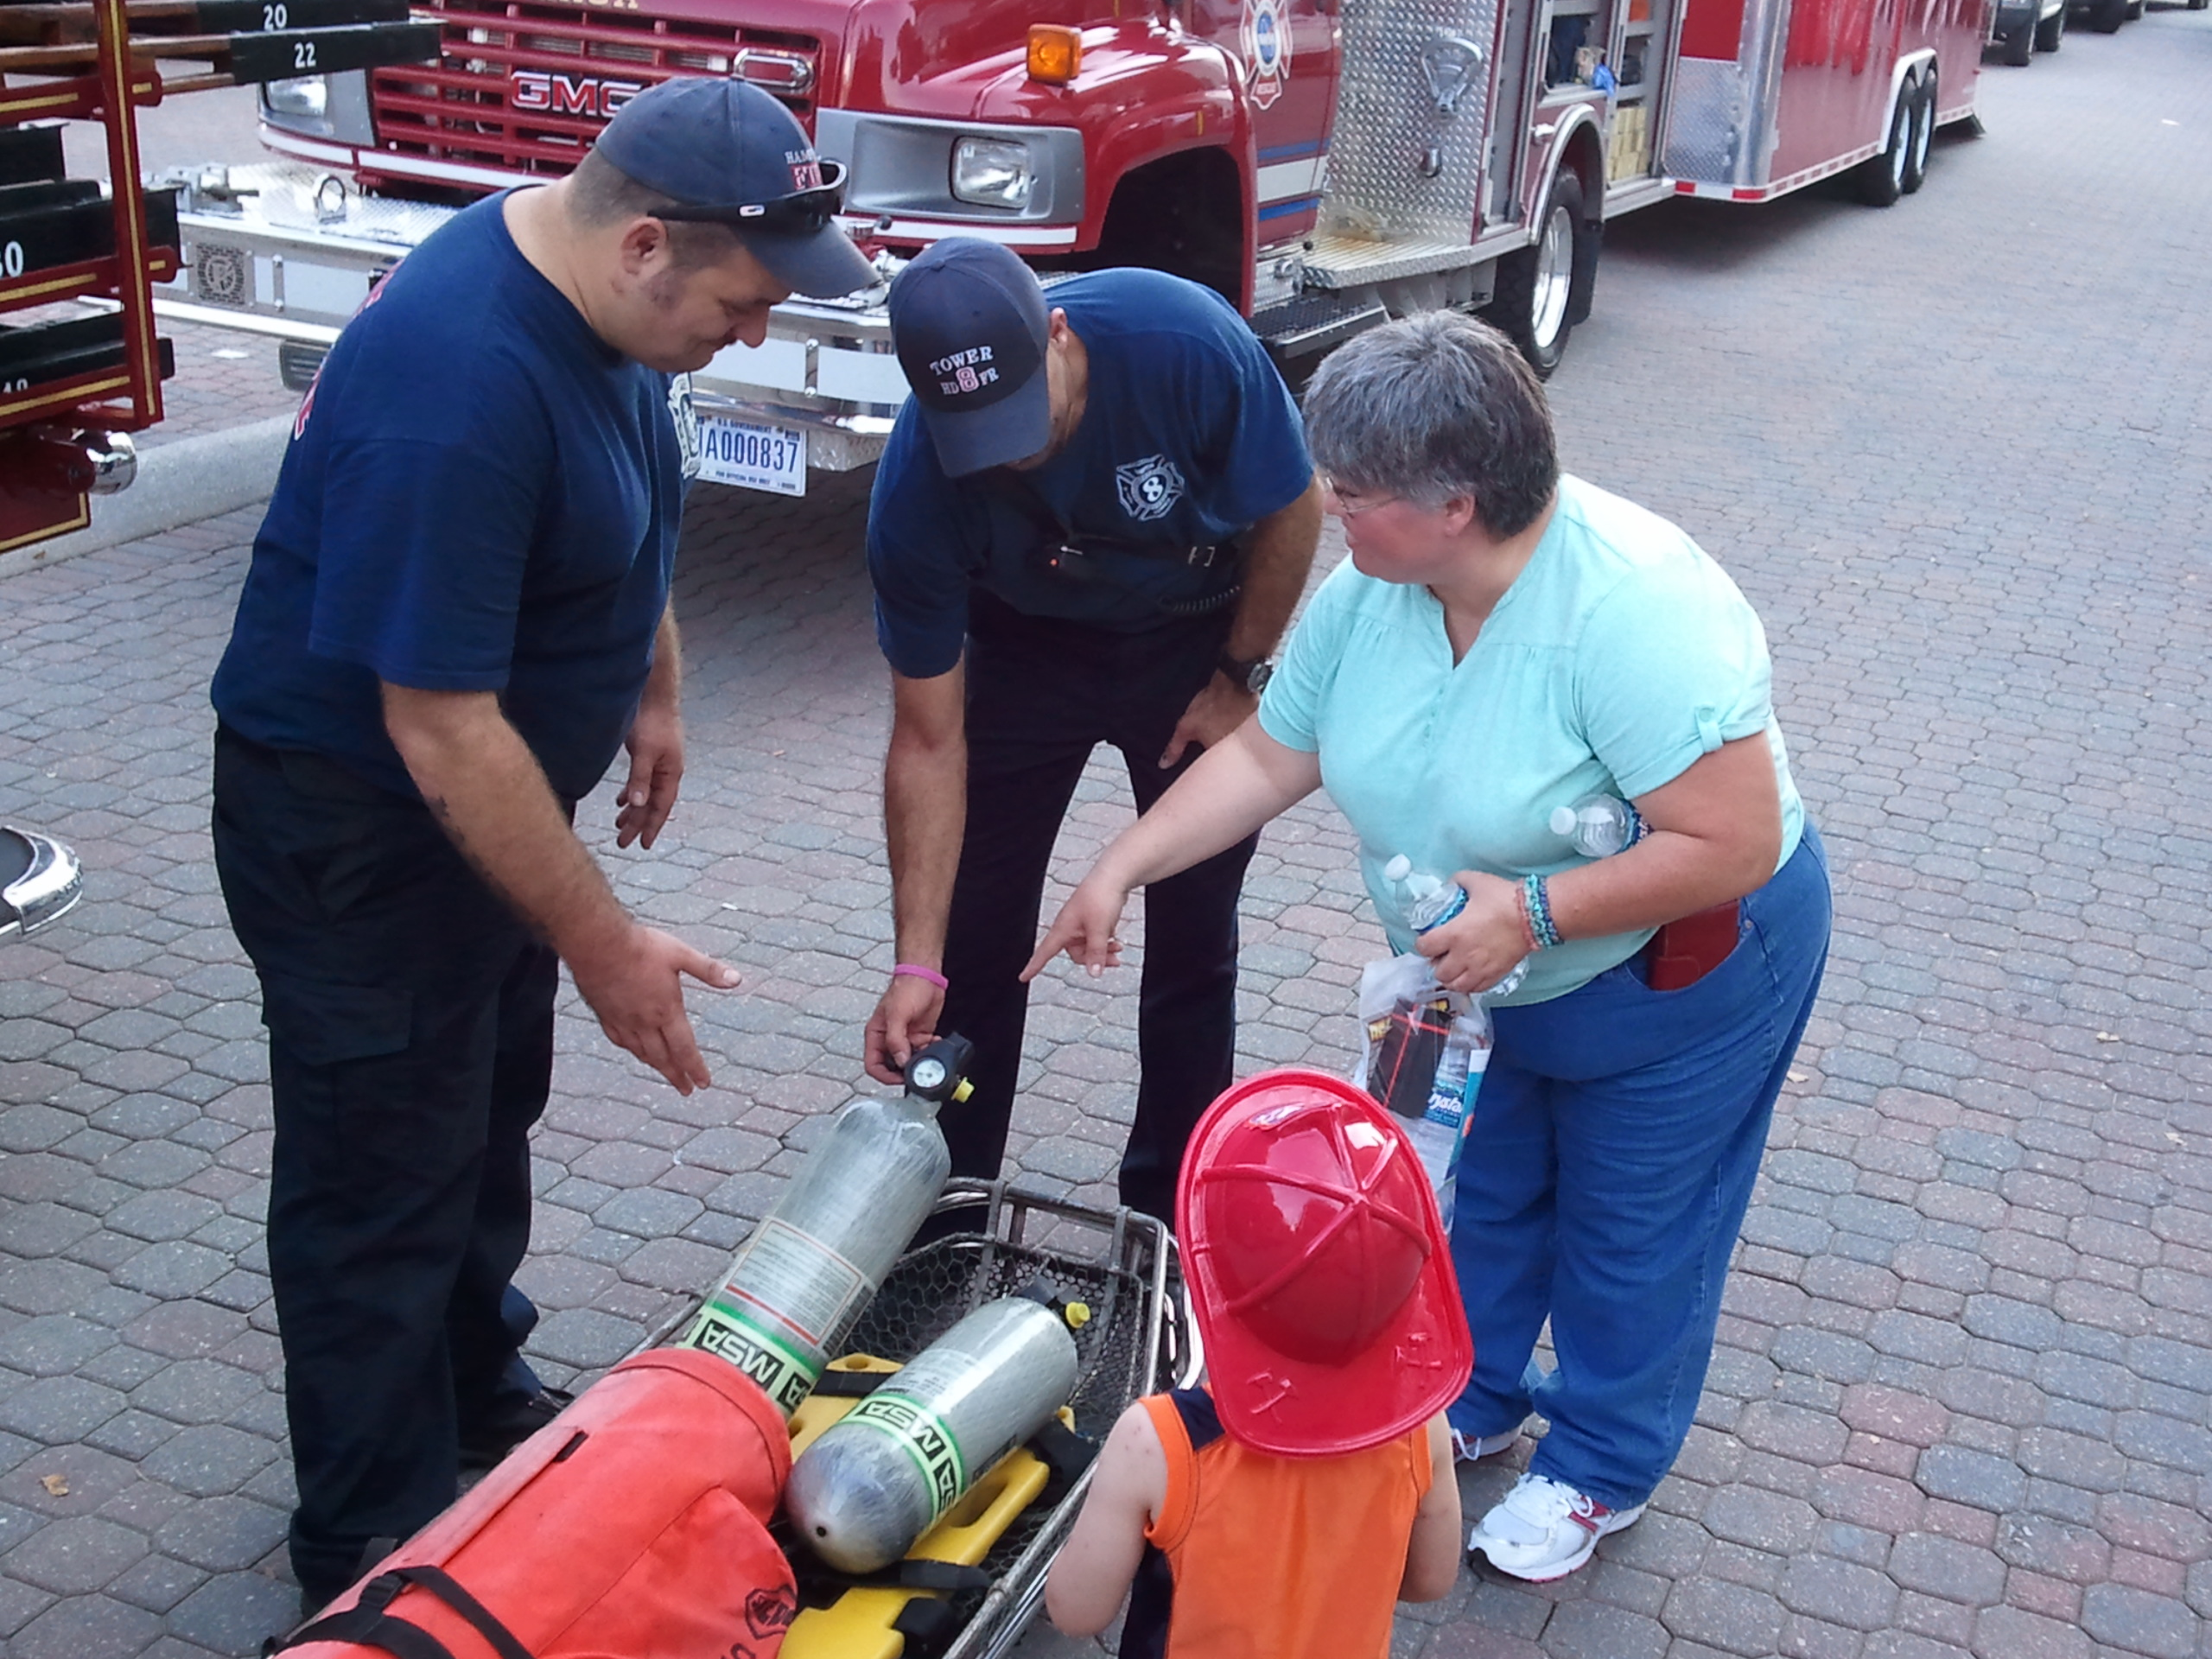 Firefighters talk with festival-goers